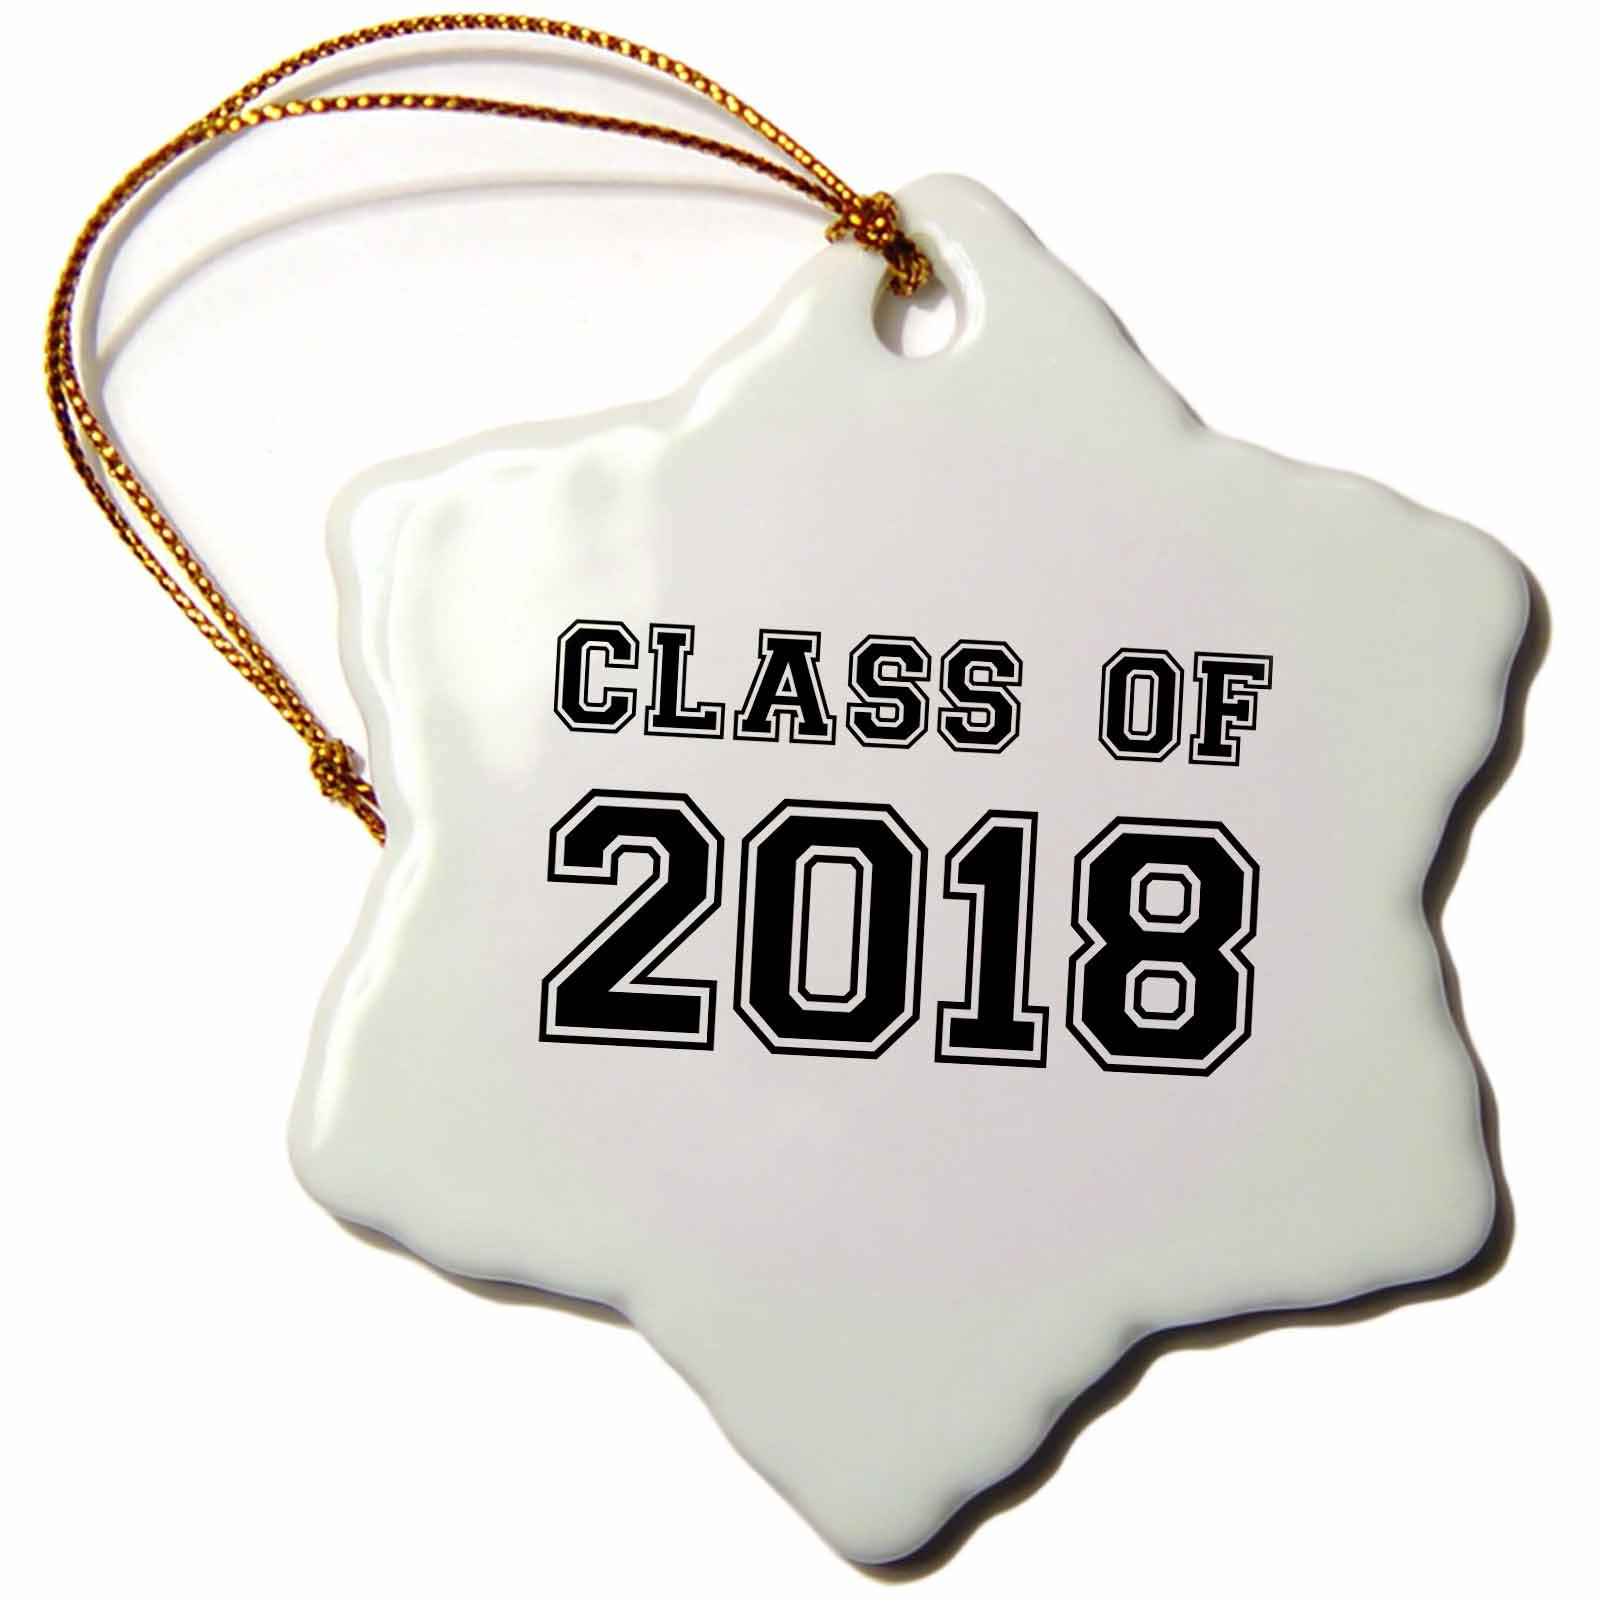 3dRose InspirationzStore Typography - Class of 2018 - Graduation gift - graduate graduating high school university or college grad black - 3 inch Snowflake Porcelain Ornament (orn_162669_1) by 3dRose (Image #1)